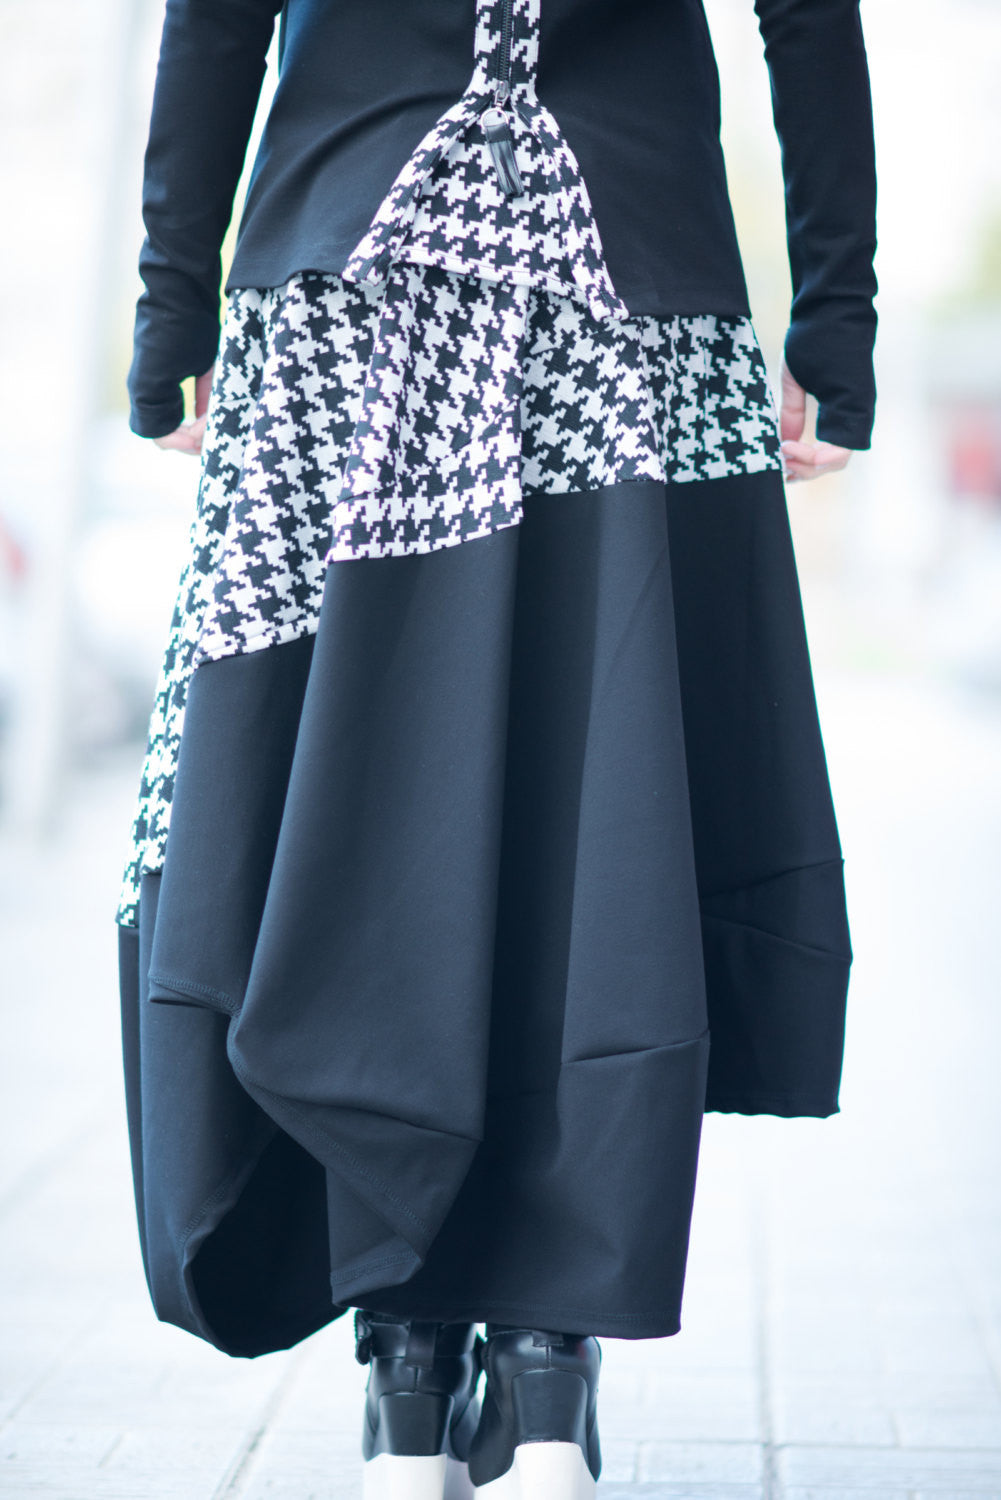 Black Shepherd's Plaid Cotton Skirt, Black and White Wide Cotton Skirt, Loose Maxi Skirt